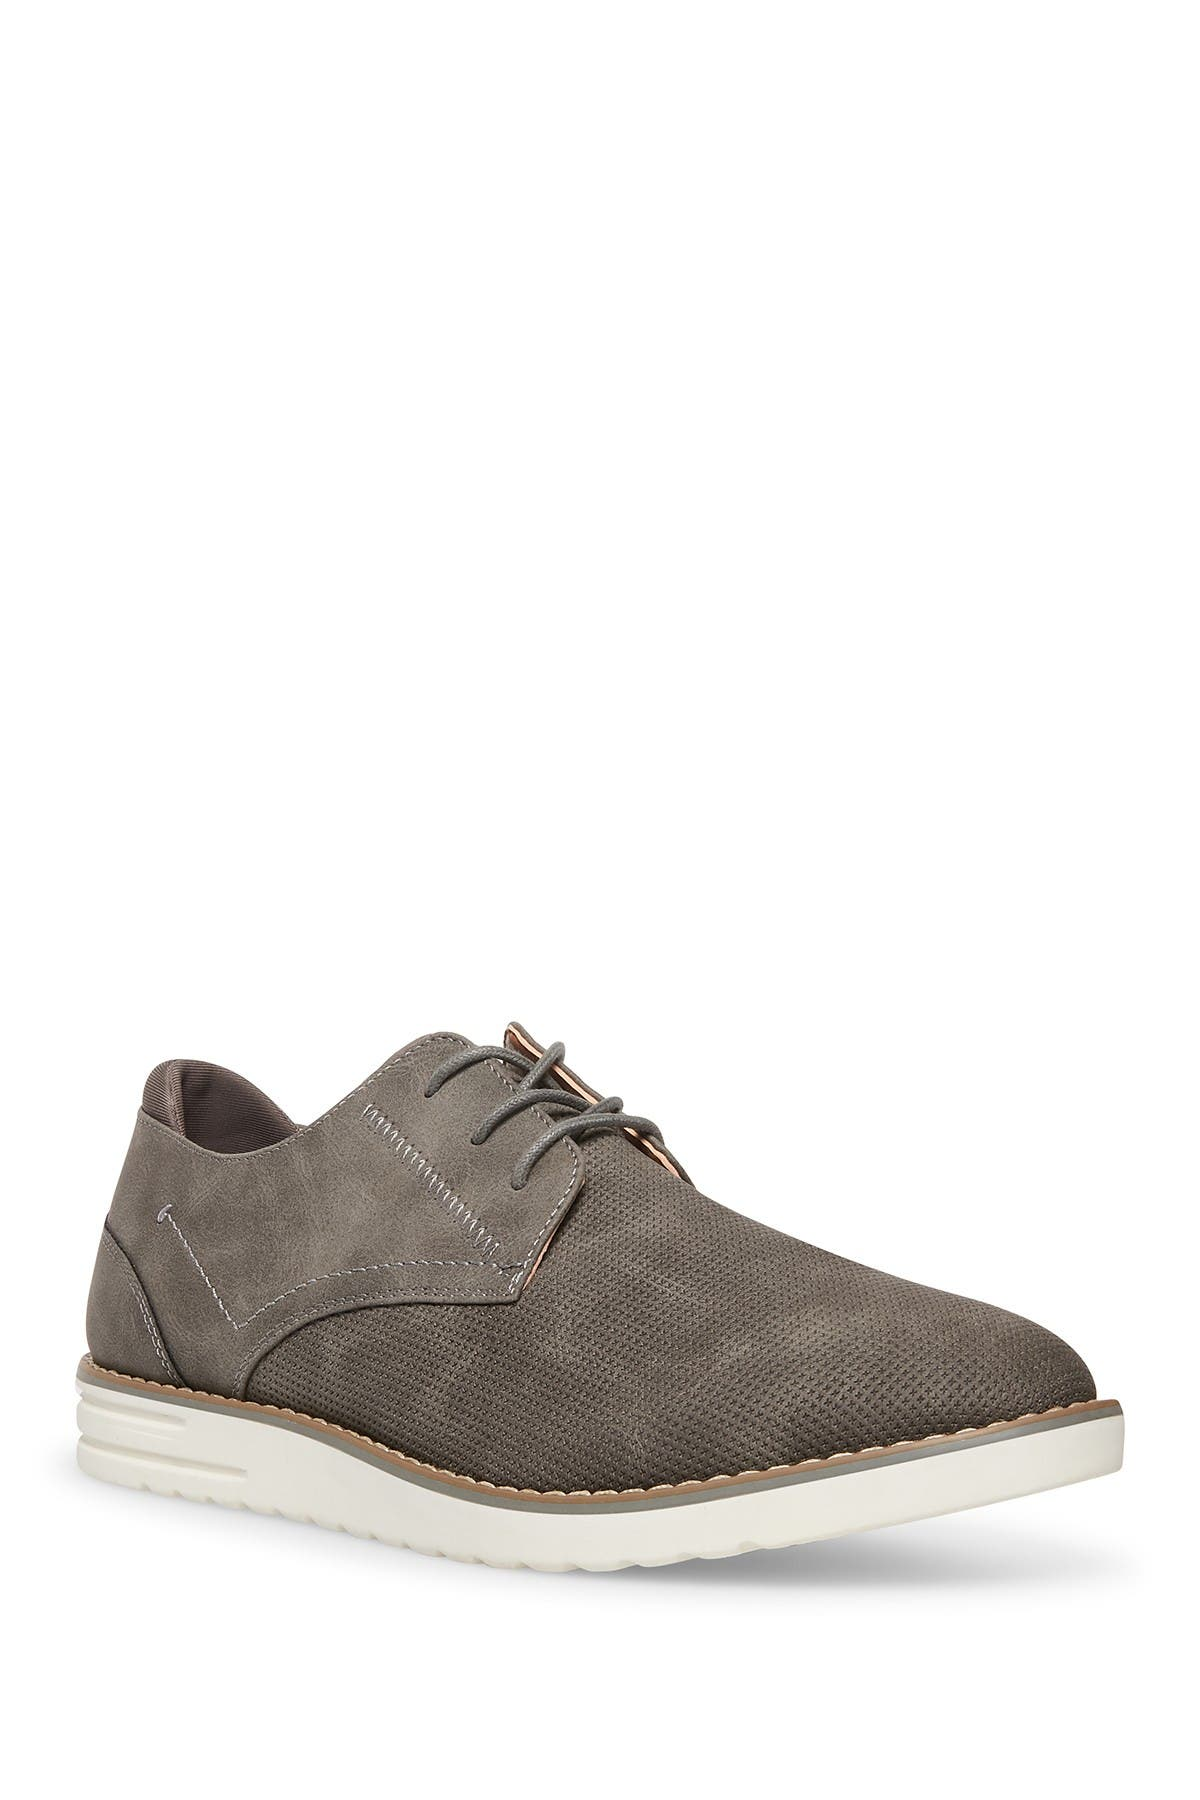 Image of Madden Caytor Perforated Oxford